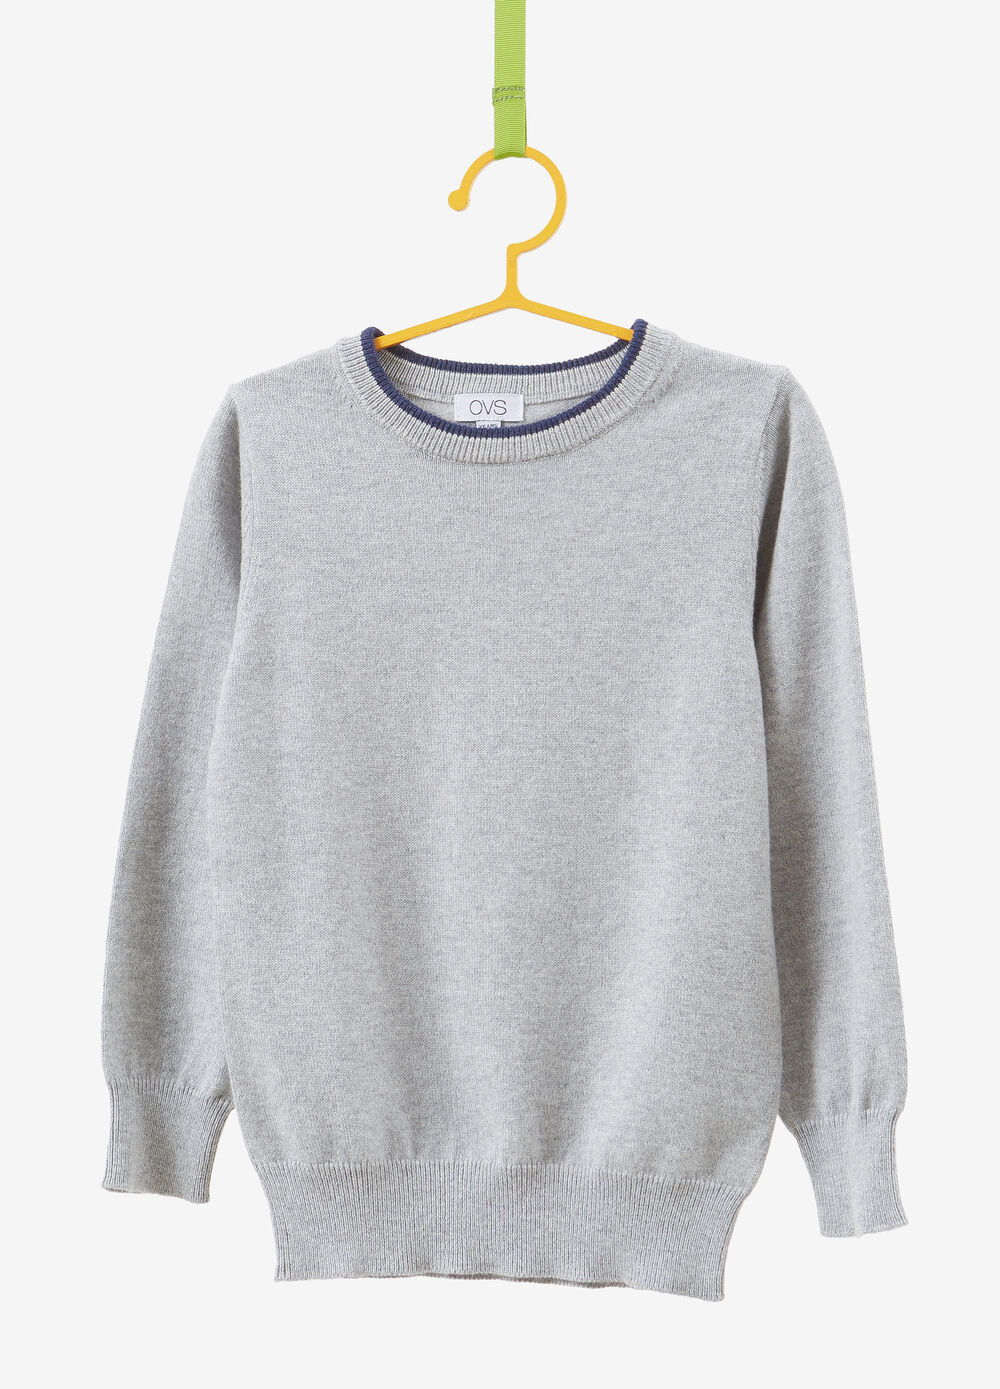 Cashmere and cotton knitted pullover